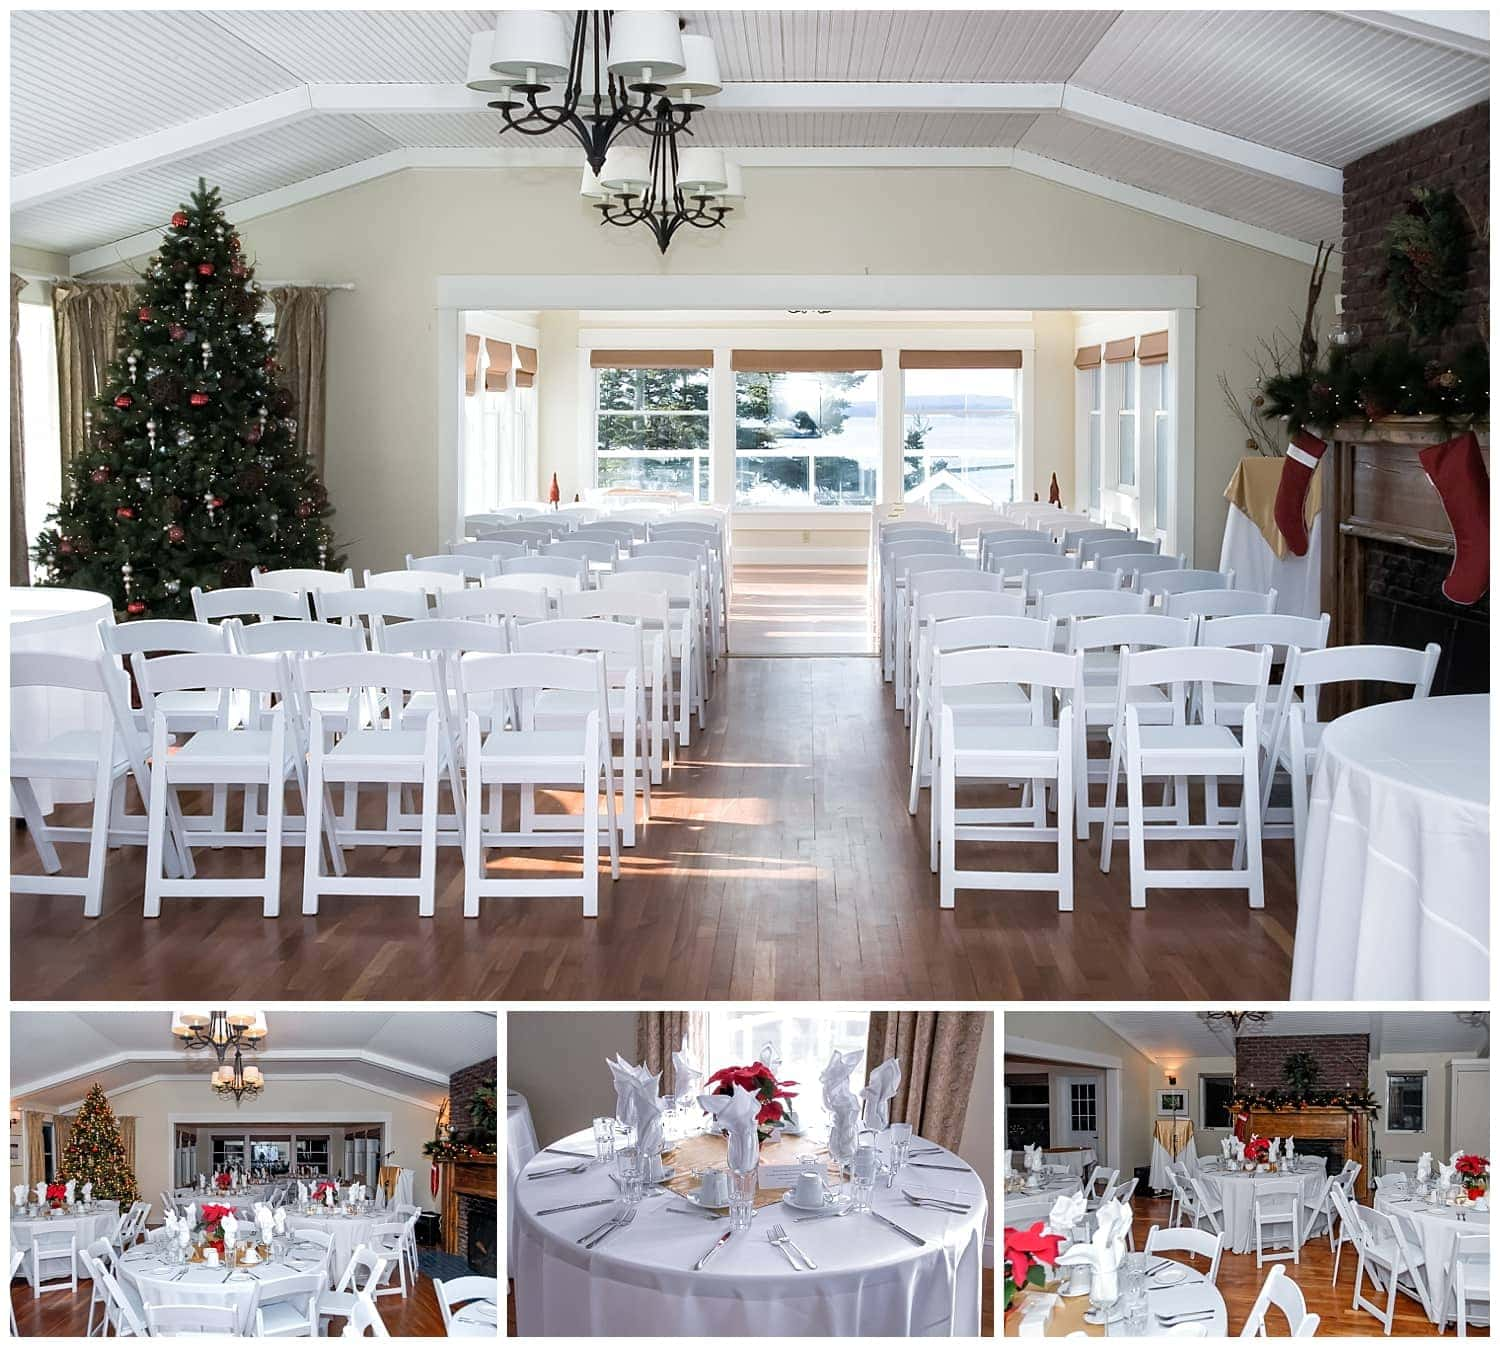 Oceanstone weddings, ceremony and reception set ups for a winter wedding.